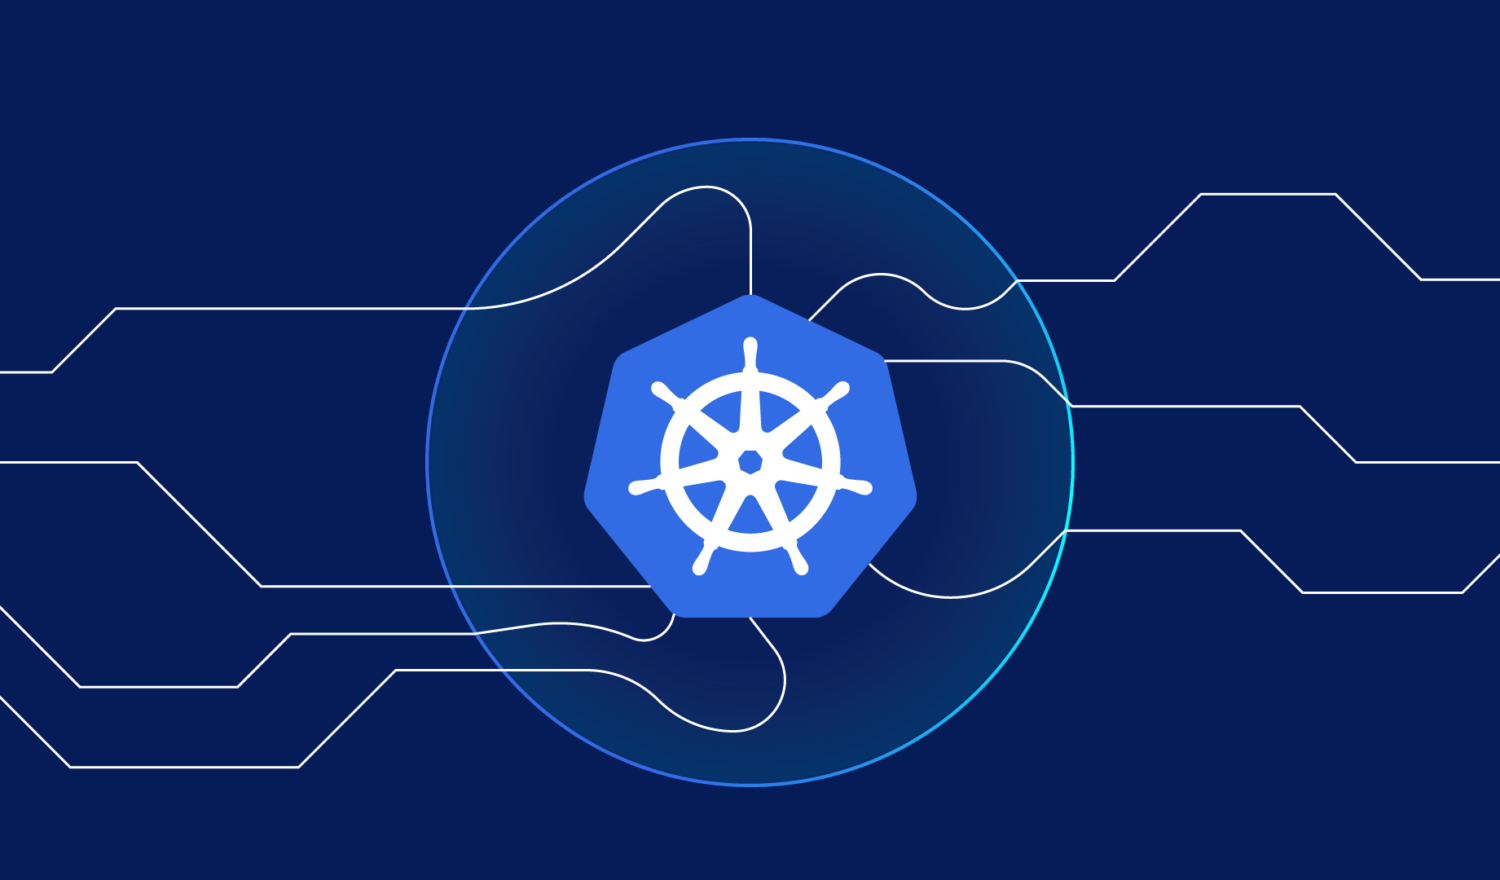 Kubernetes Dynamic Admission Controller routing requests